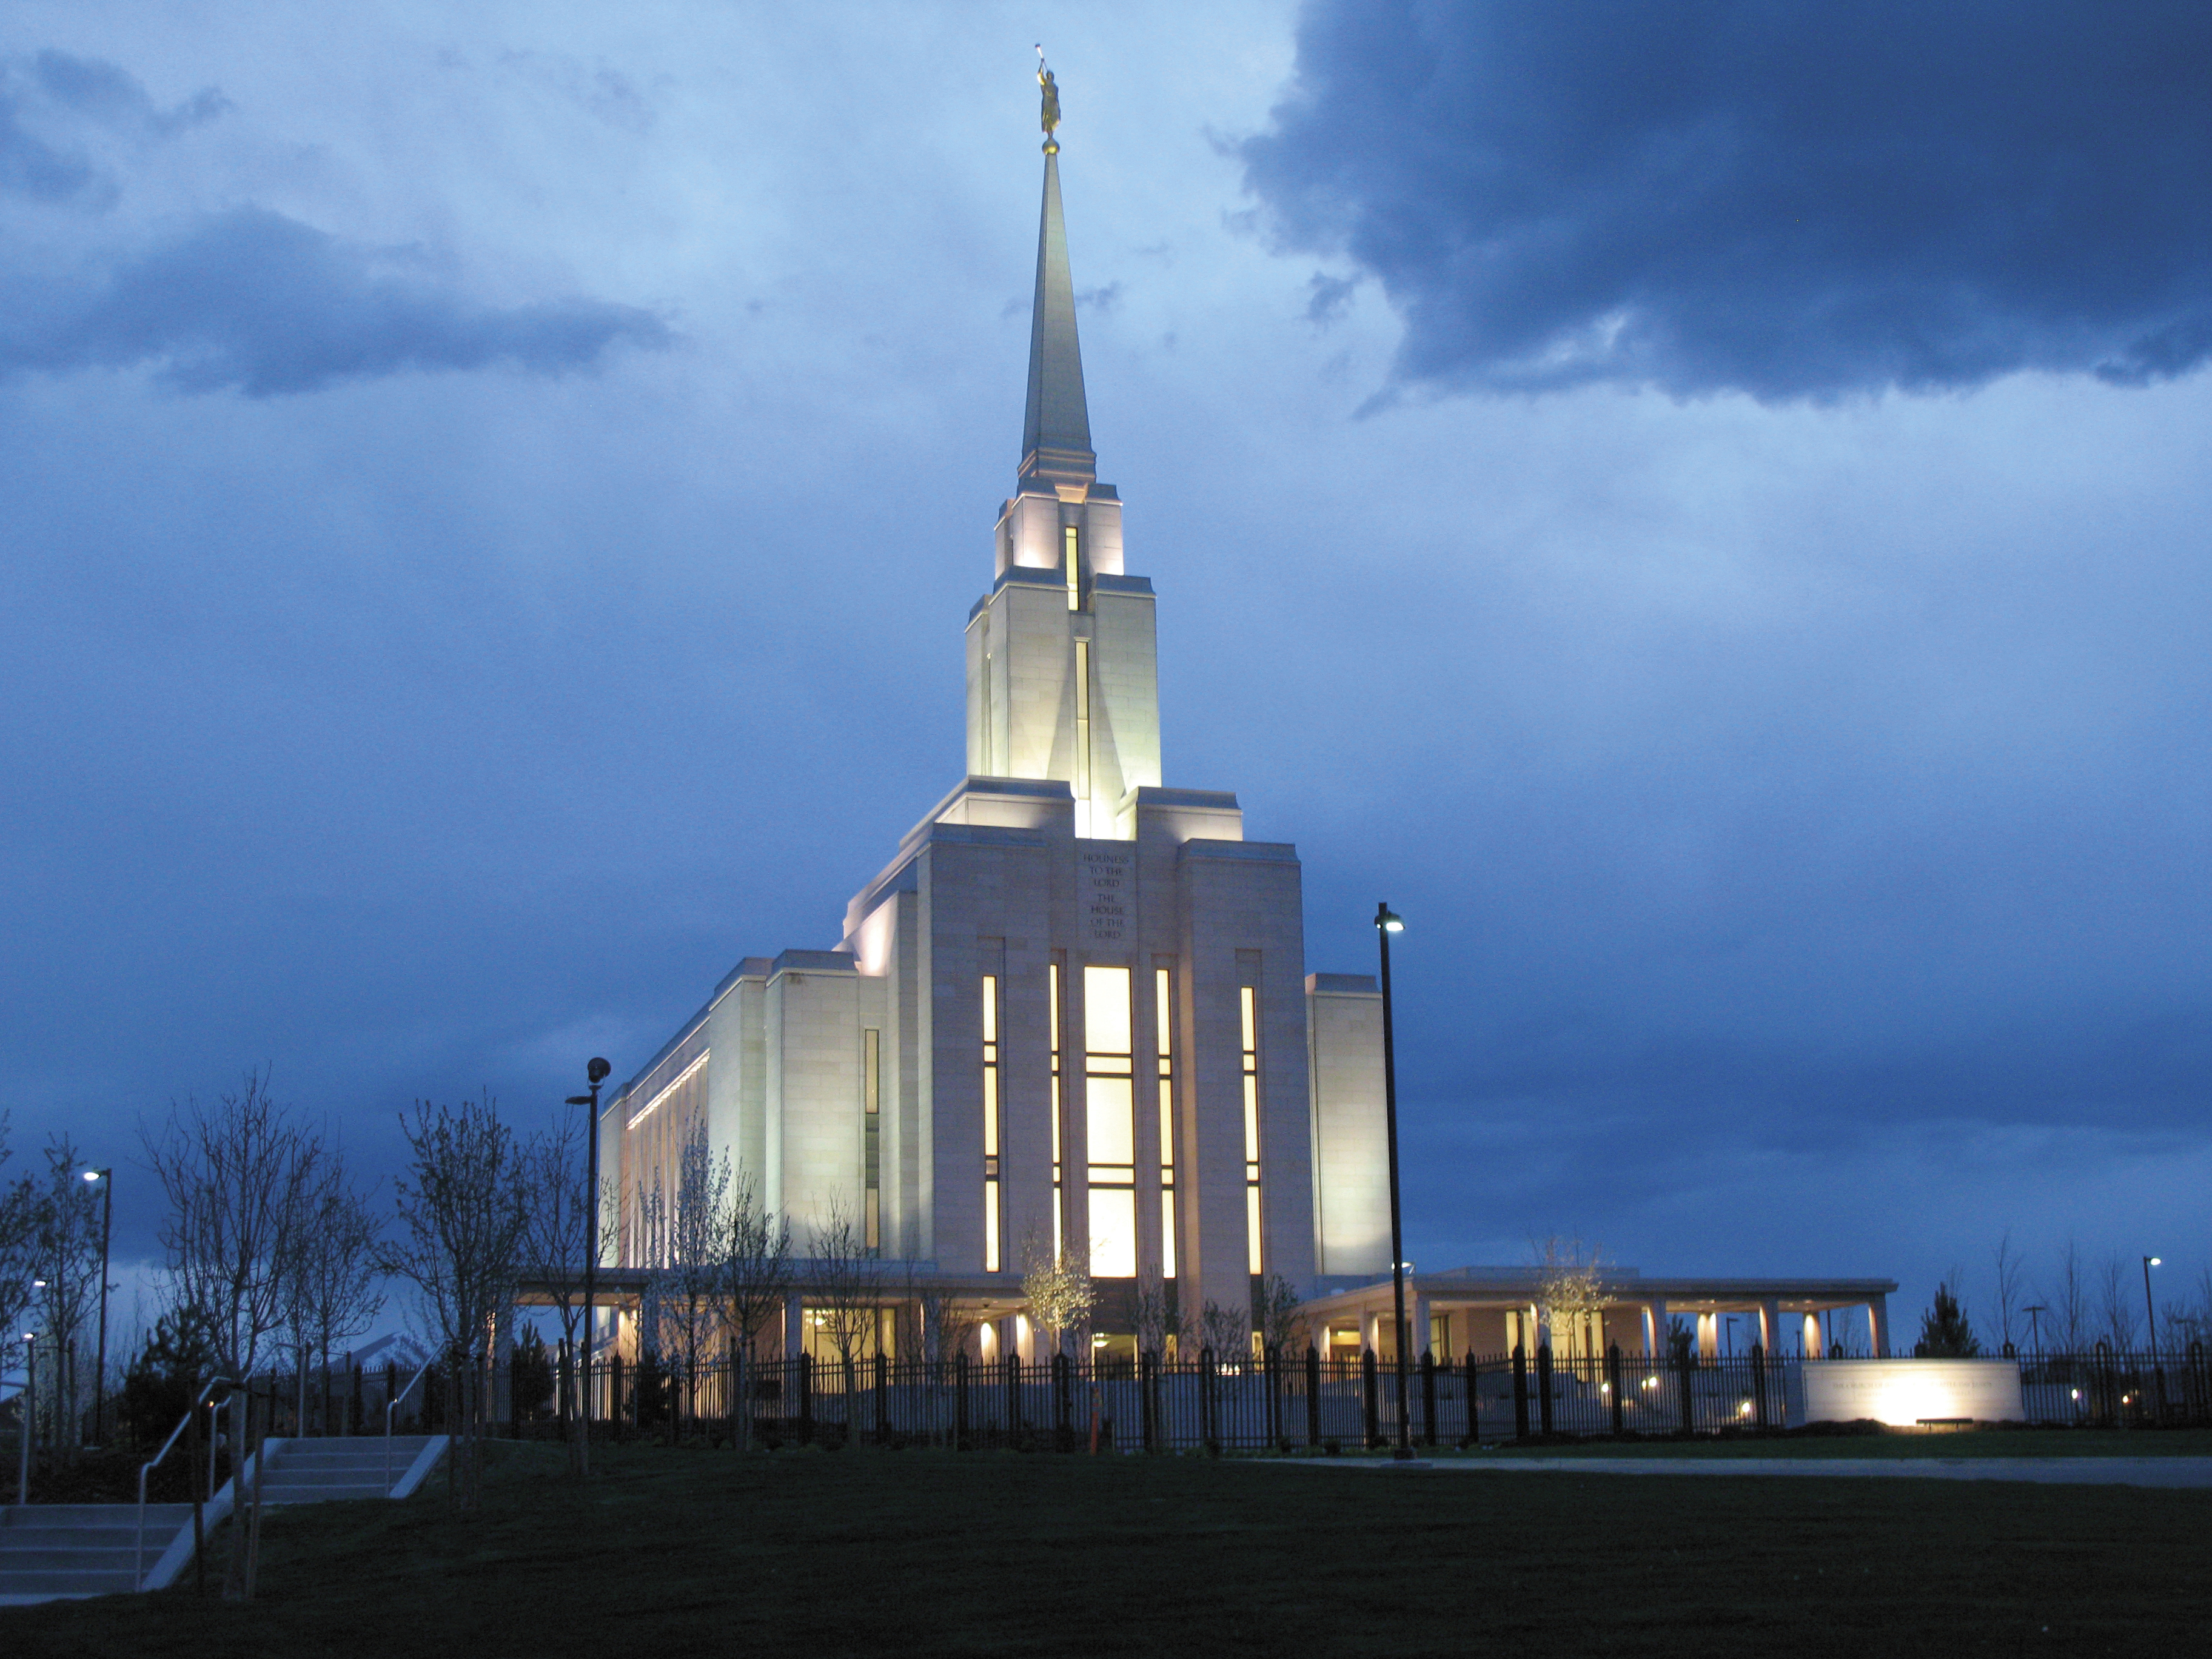 The Oquirrh Mountain Utah Temple in the evening, including the entrance and scenery.